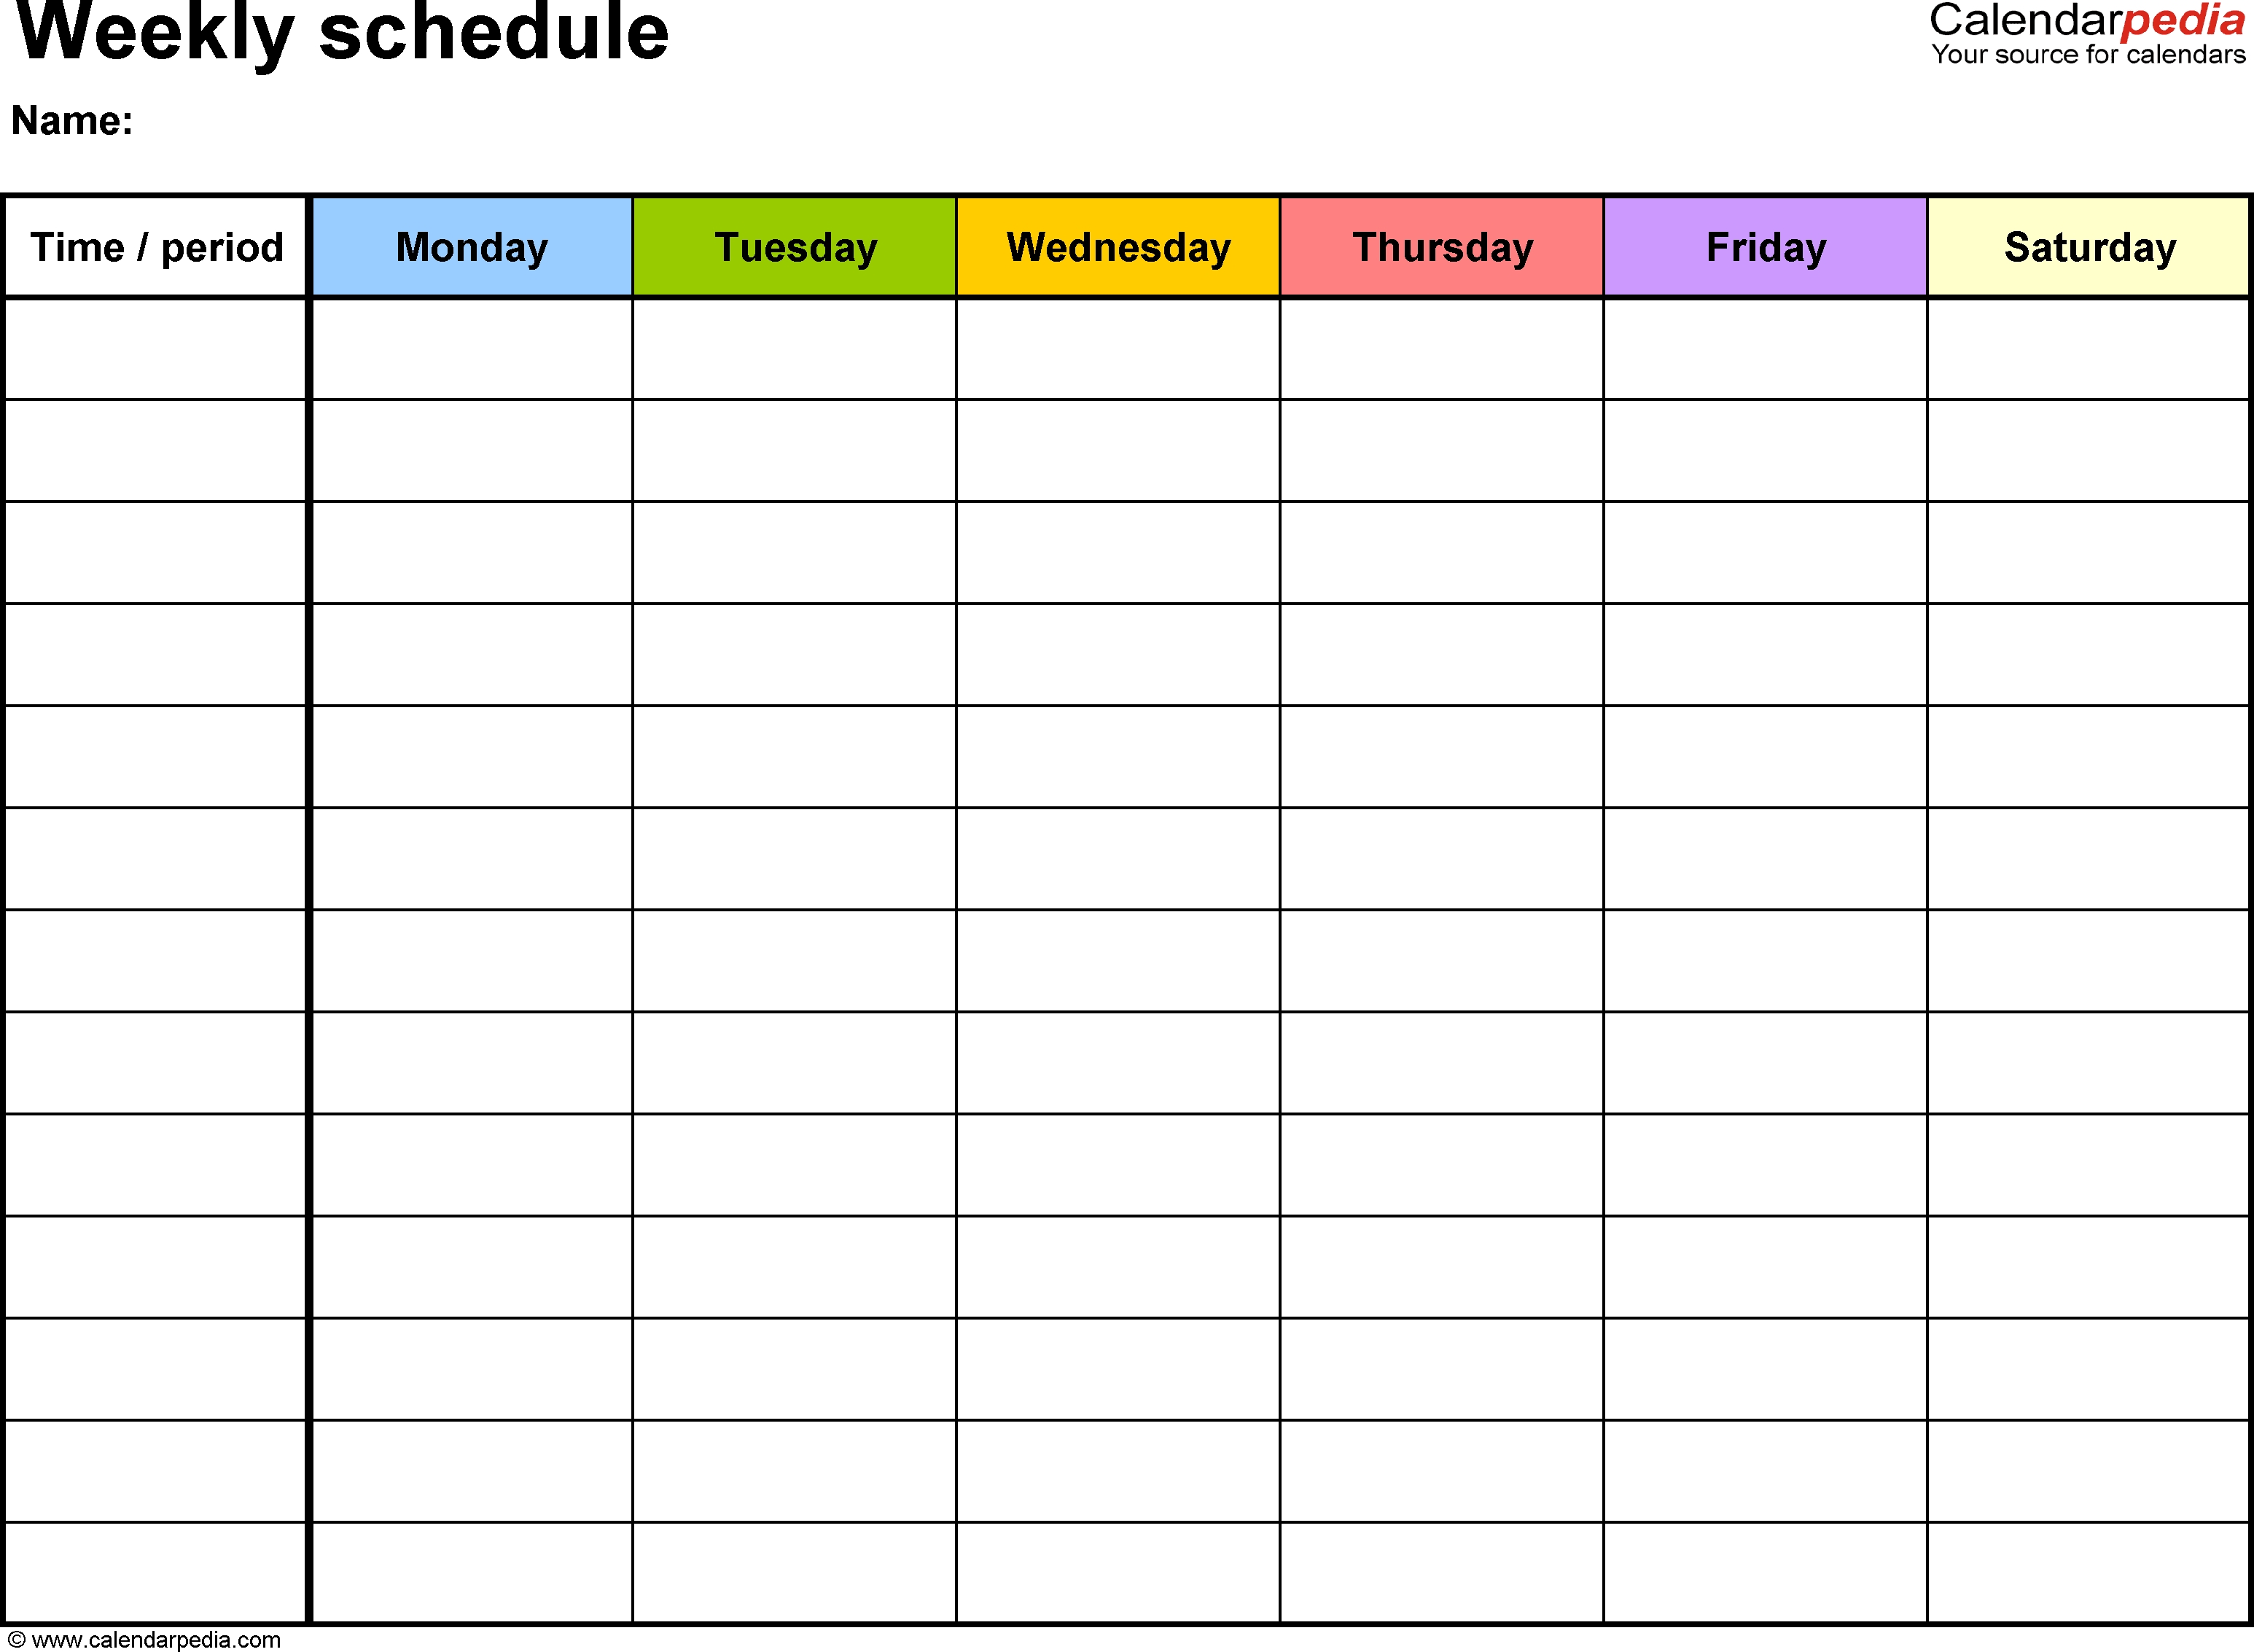 Free Weekly Schedule Templates For Word - 18 Templates with regard to Blank Week Calender With Times